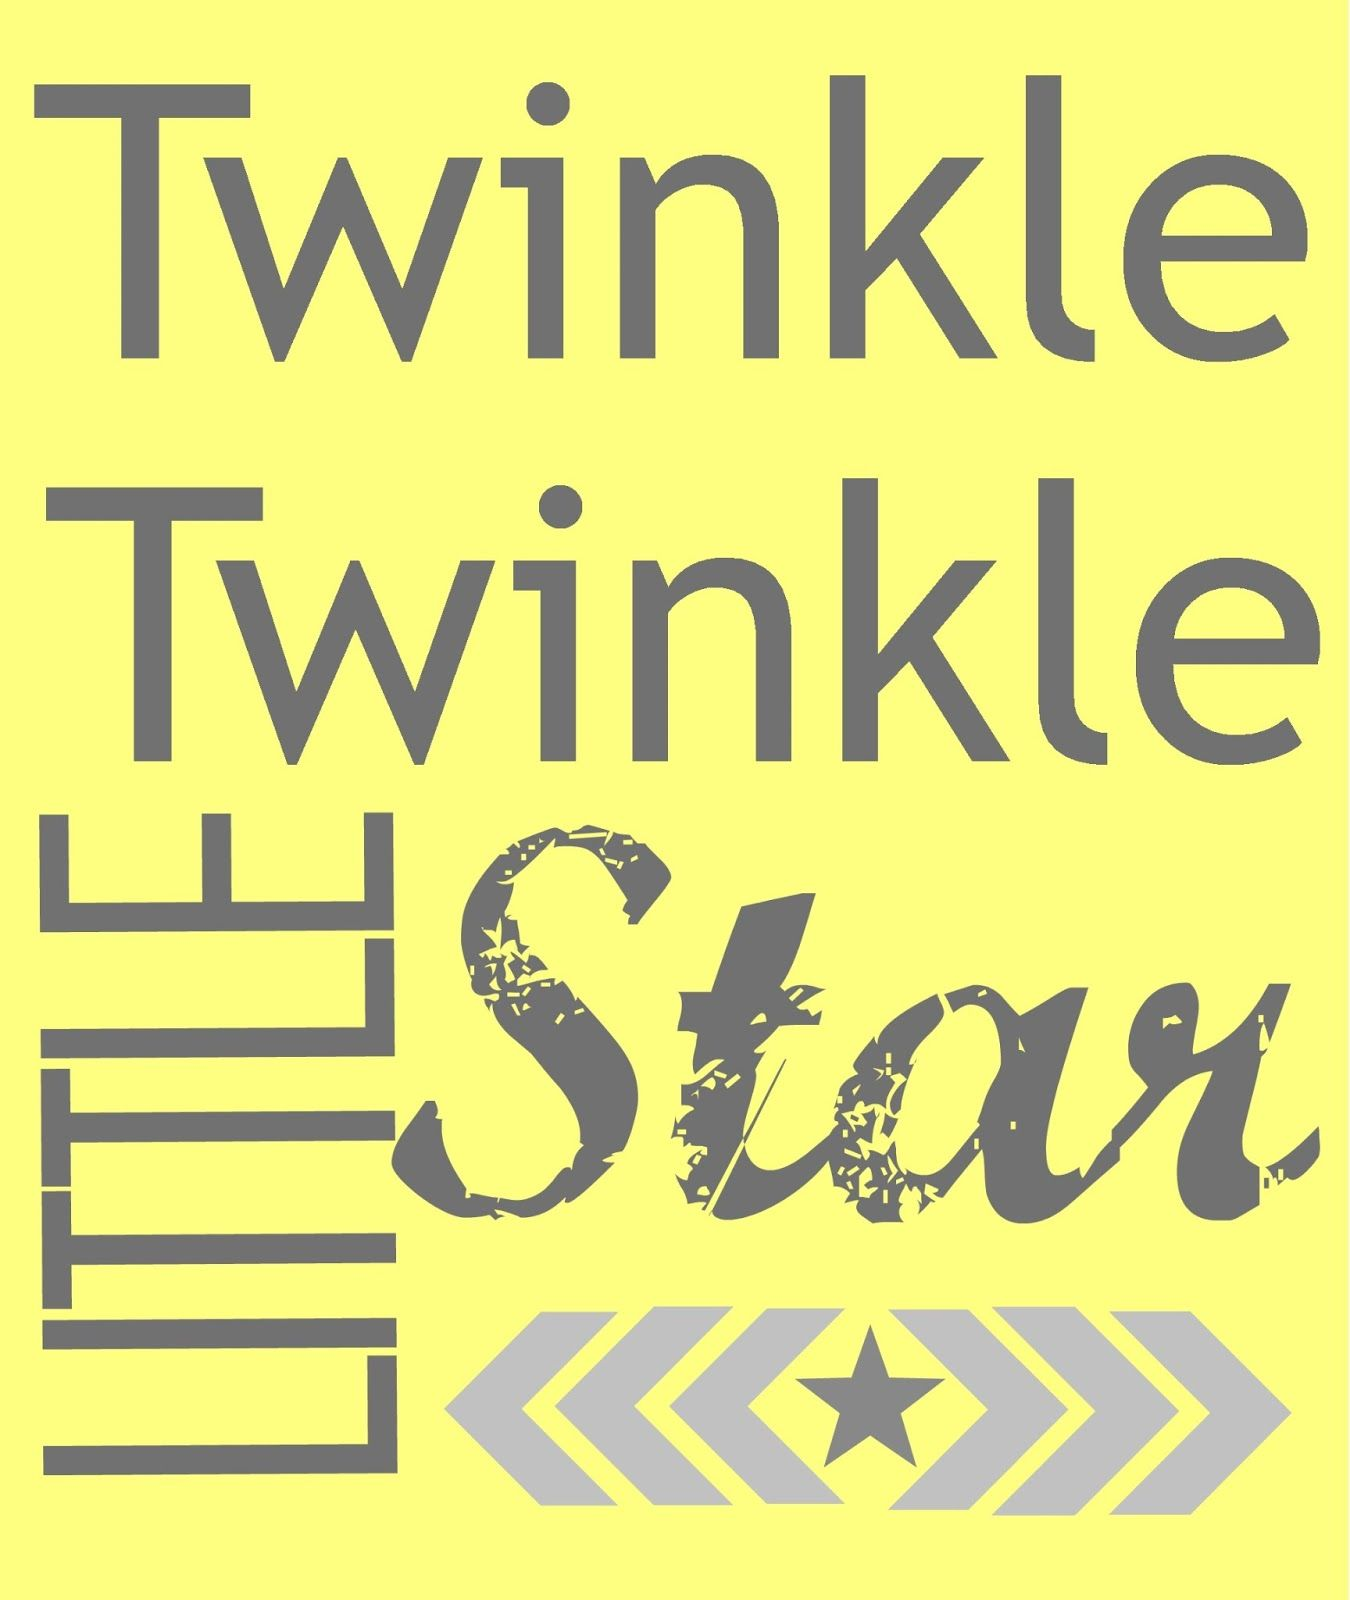 Wall Art is Addicting - & a Free Printable   Twinkle twinkle, Free ...